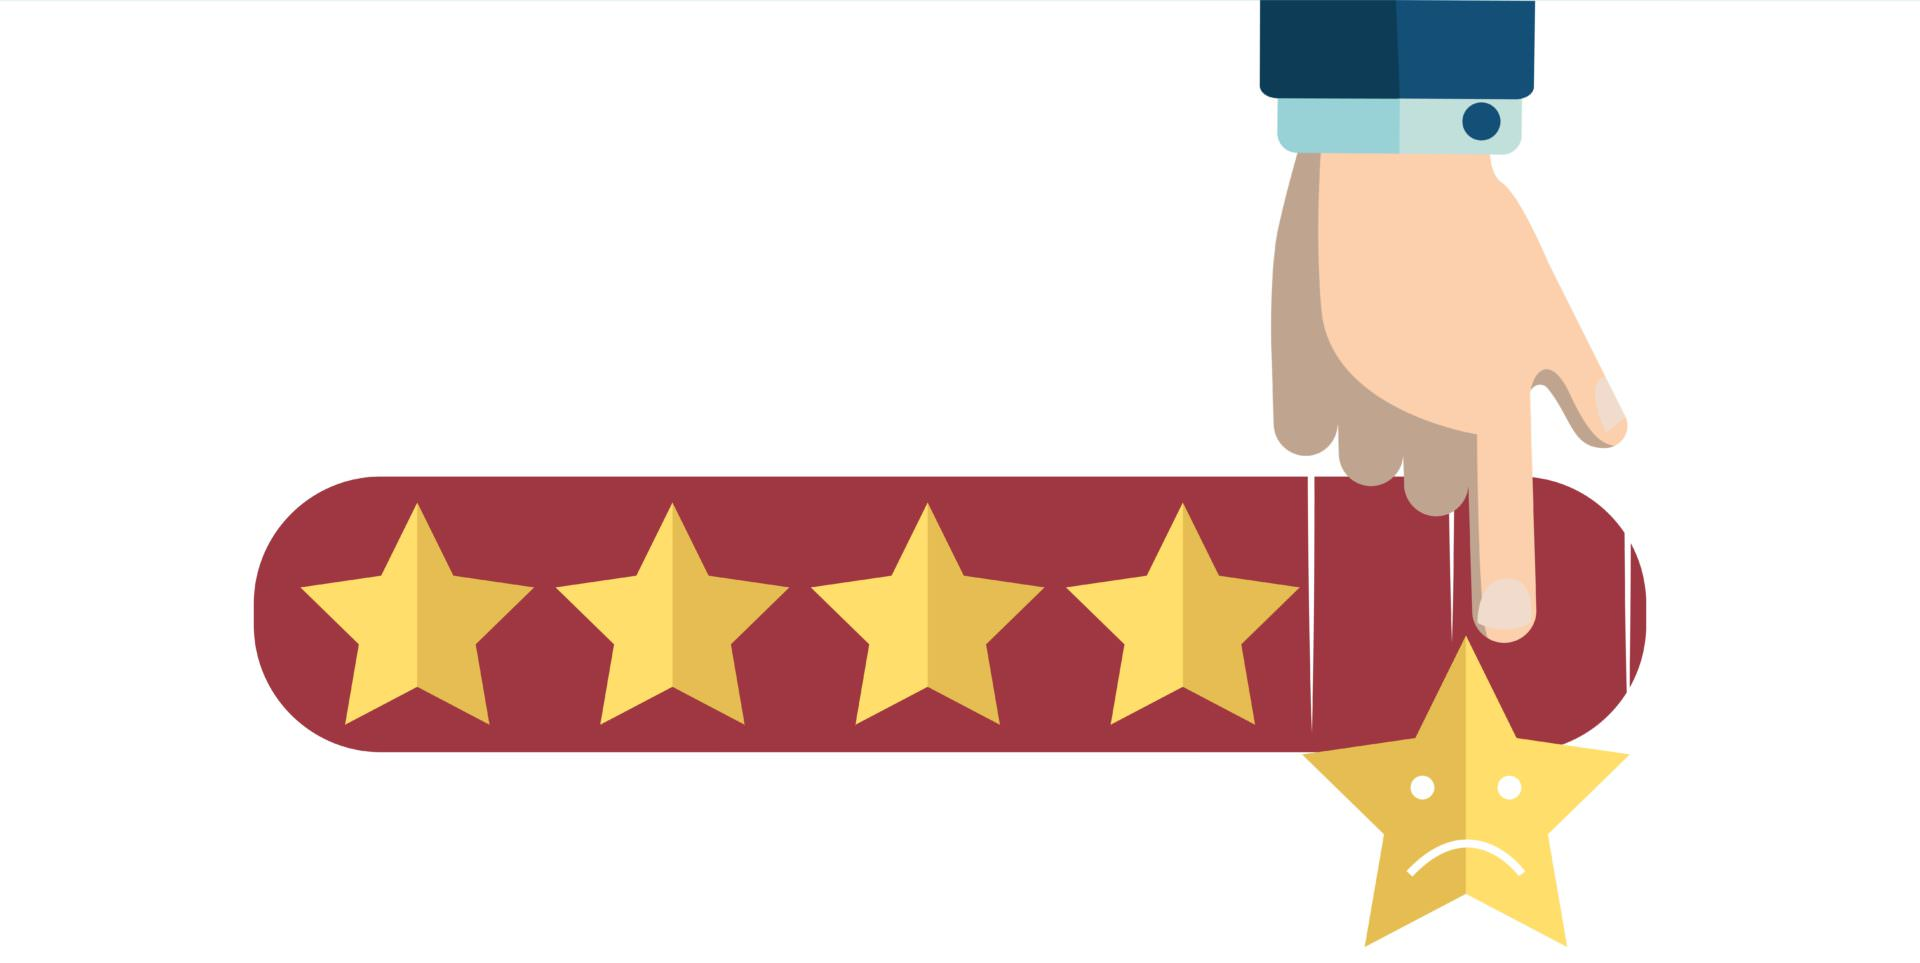 graphic depicting a negative online review